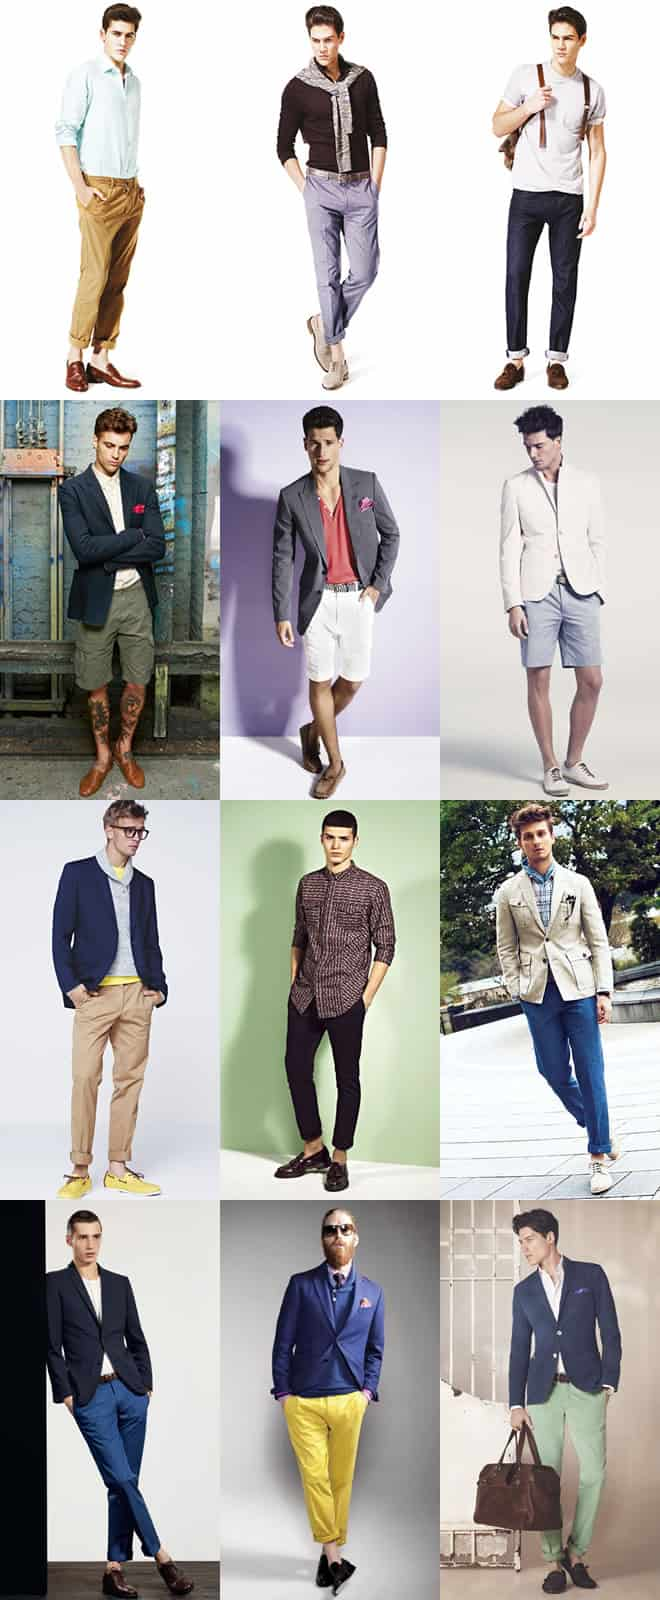 Men's Casual Sockless Lookbook